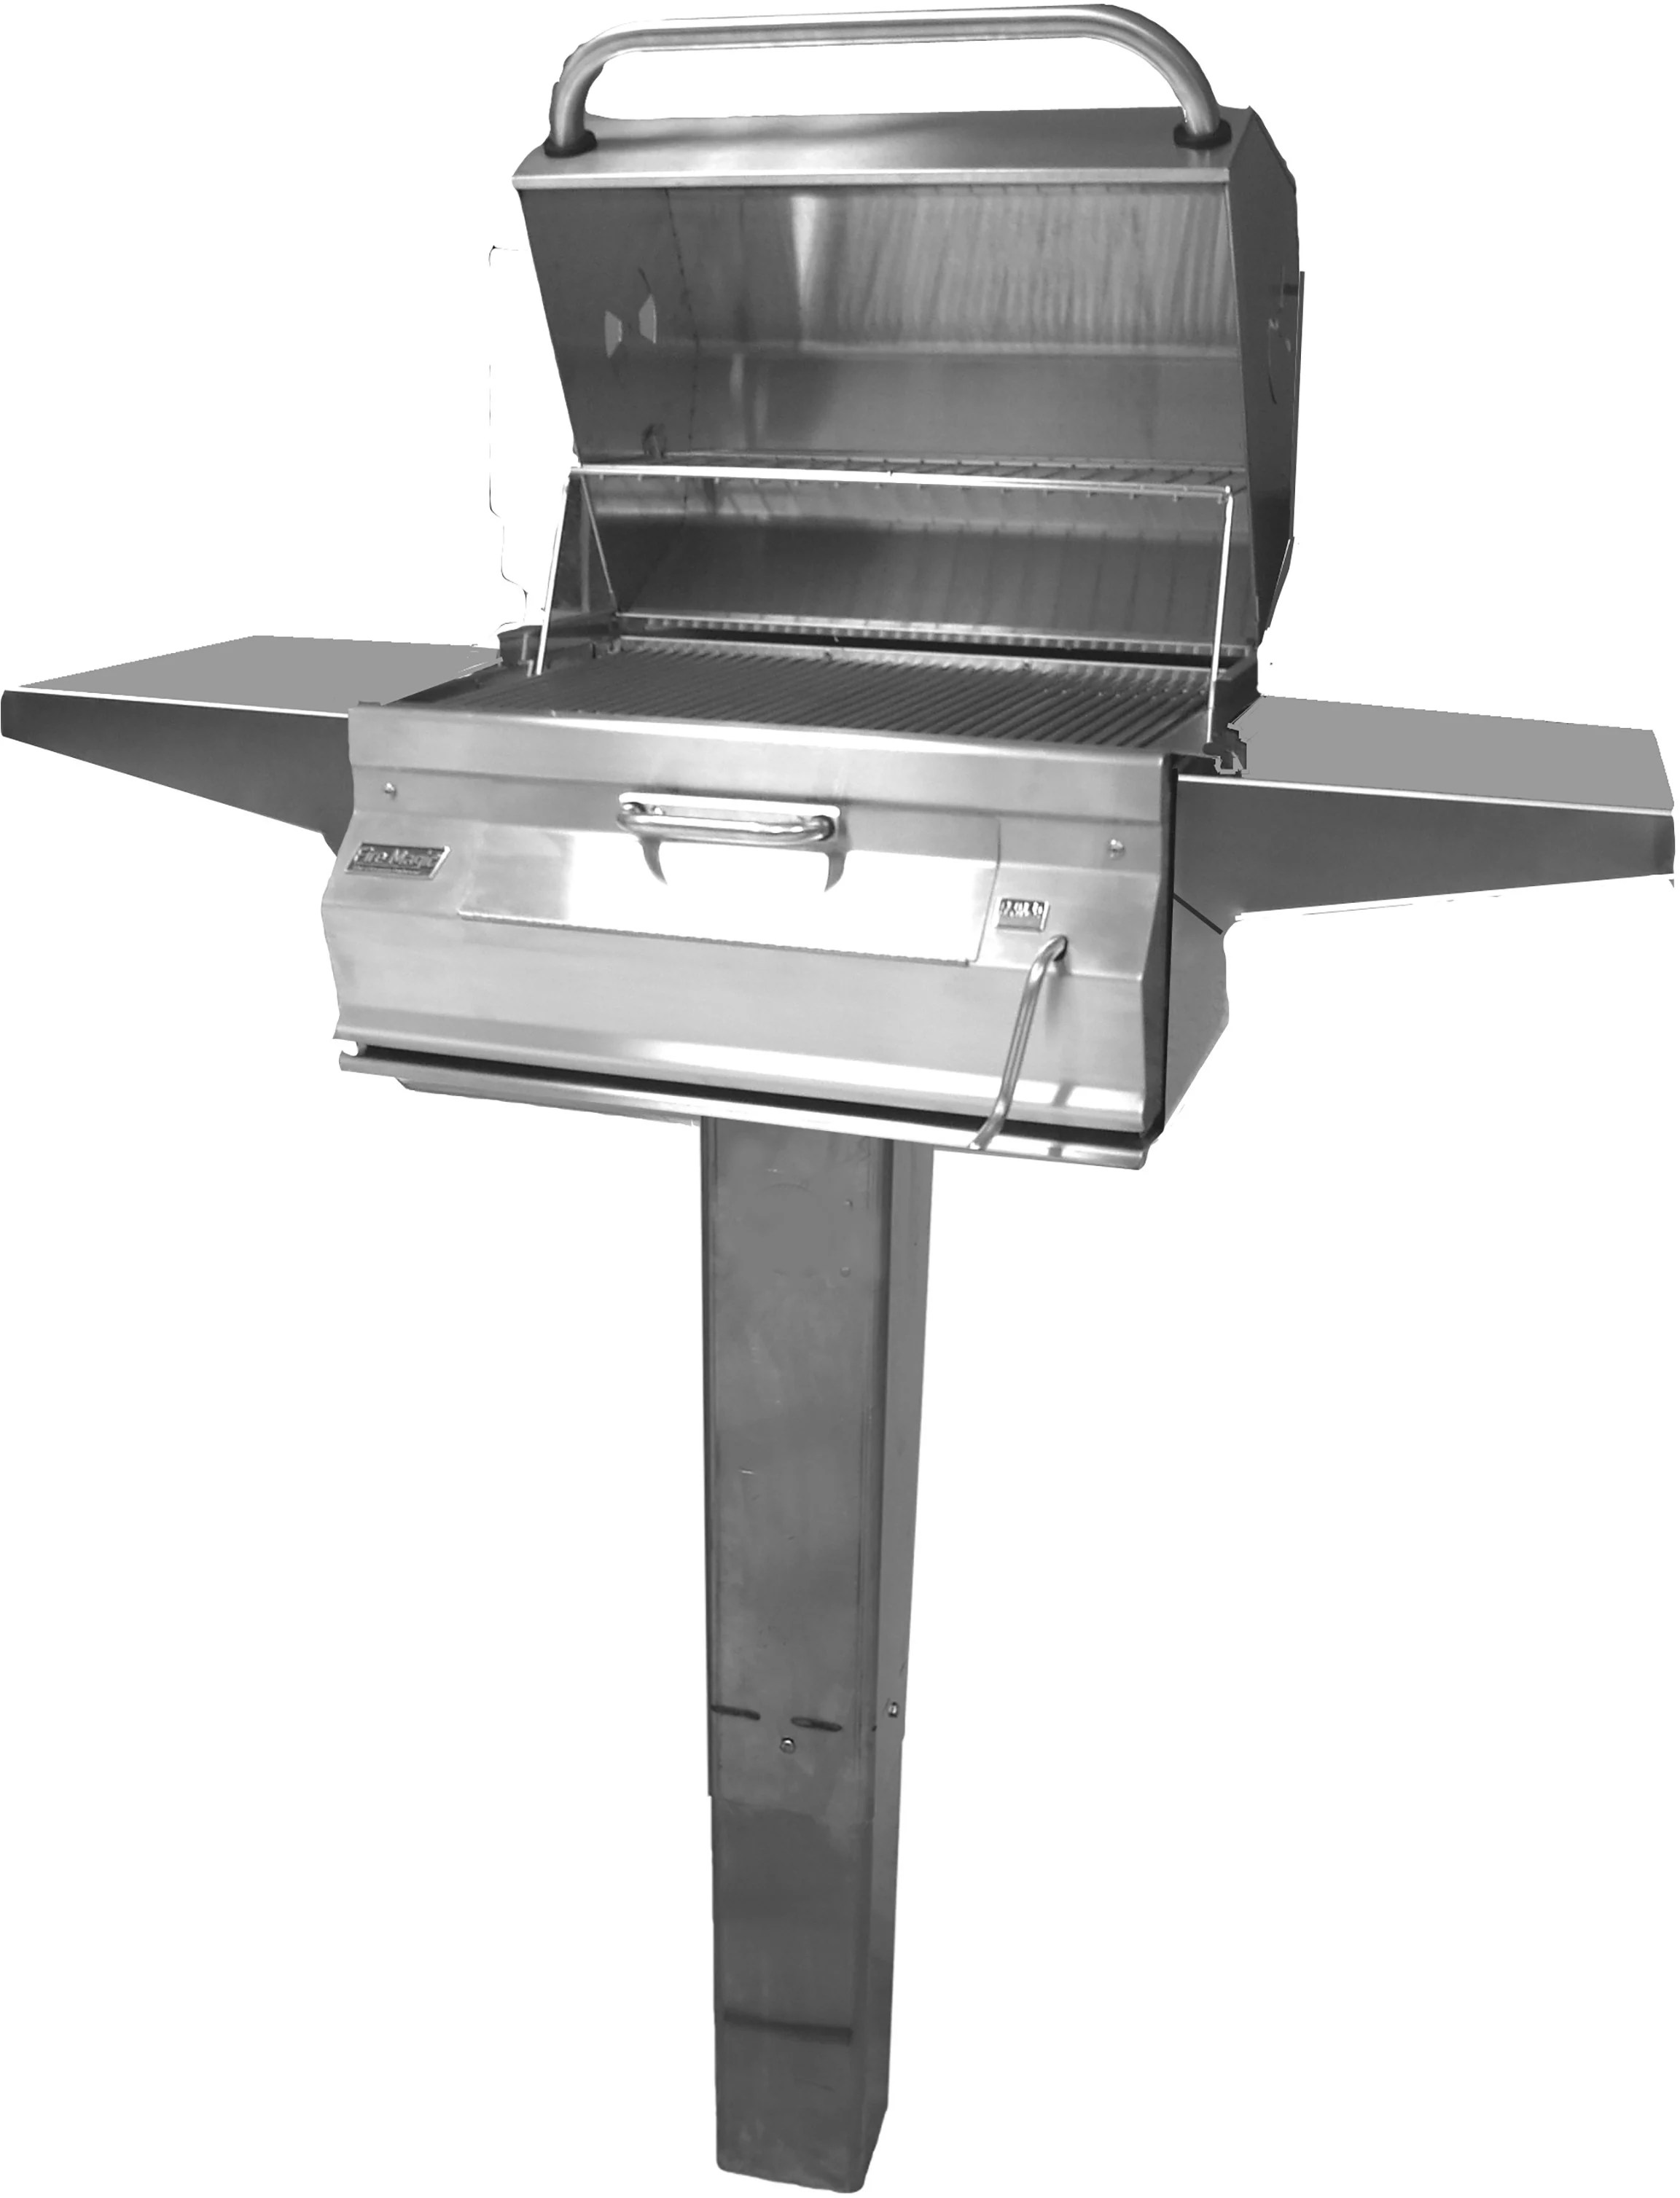 Fire Magic 22sc01cg6 56 Inch Charcoal Grill With Warming